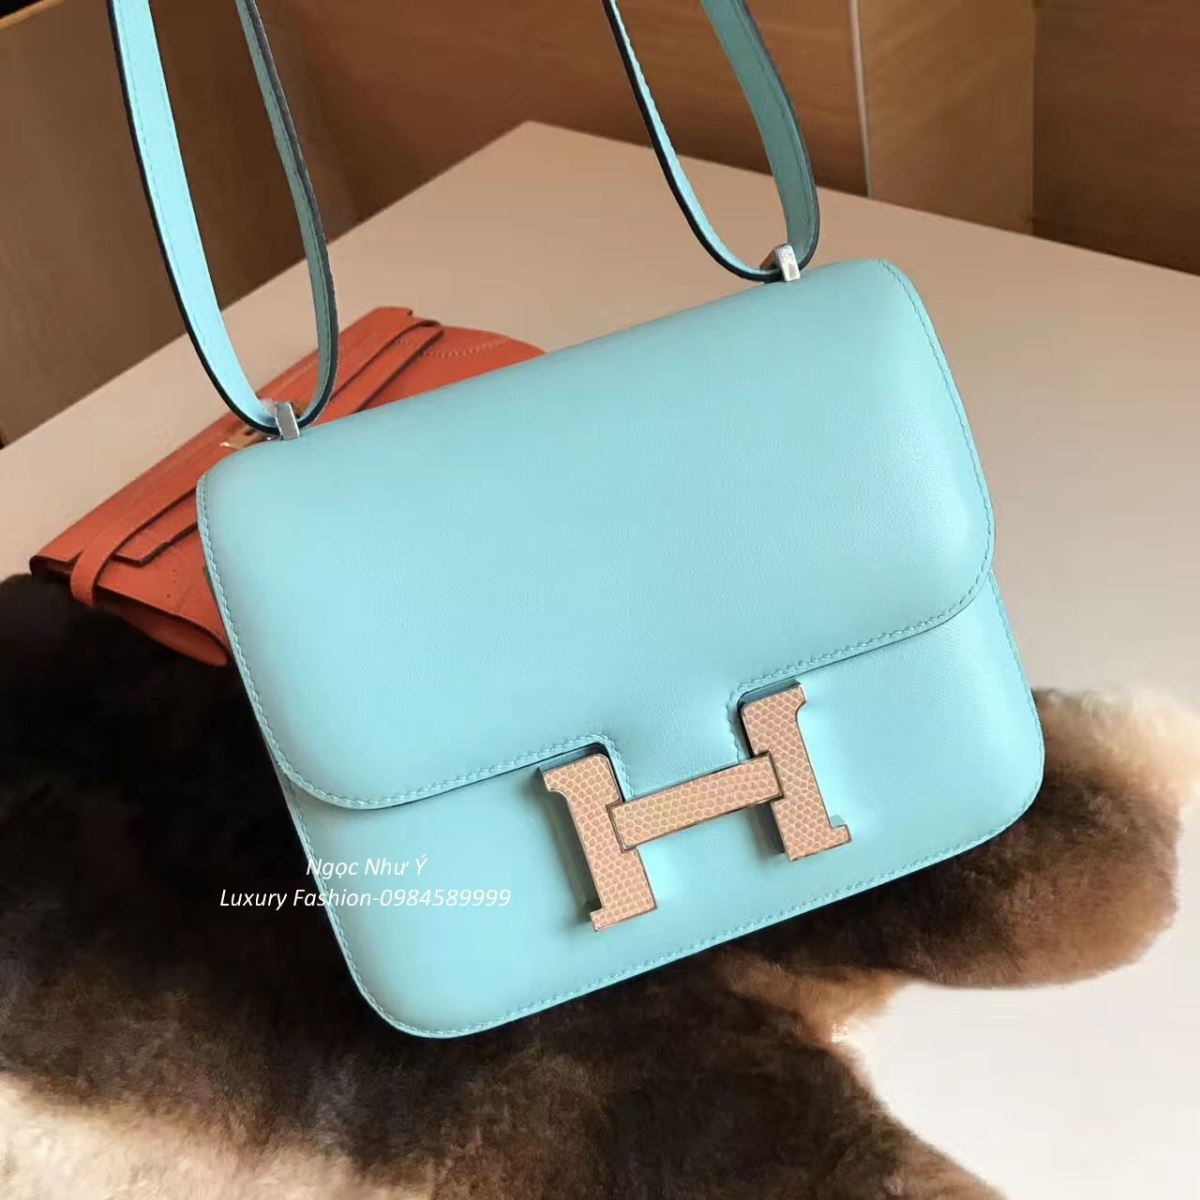 Hermes Constance Mini 18 Swift Blue Atoll